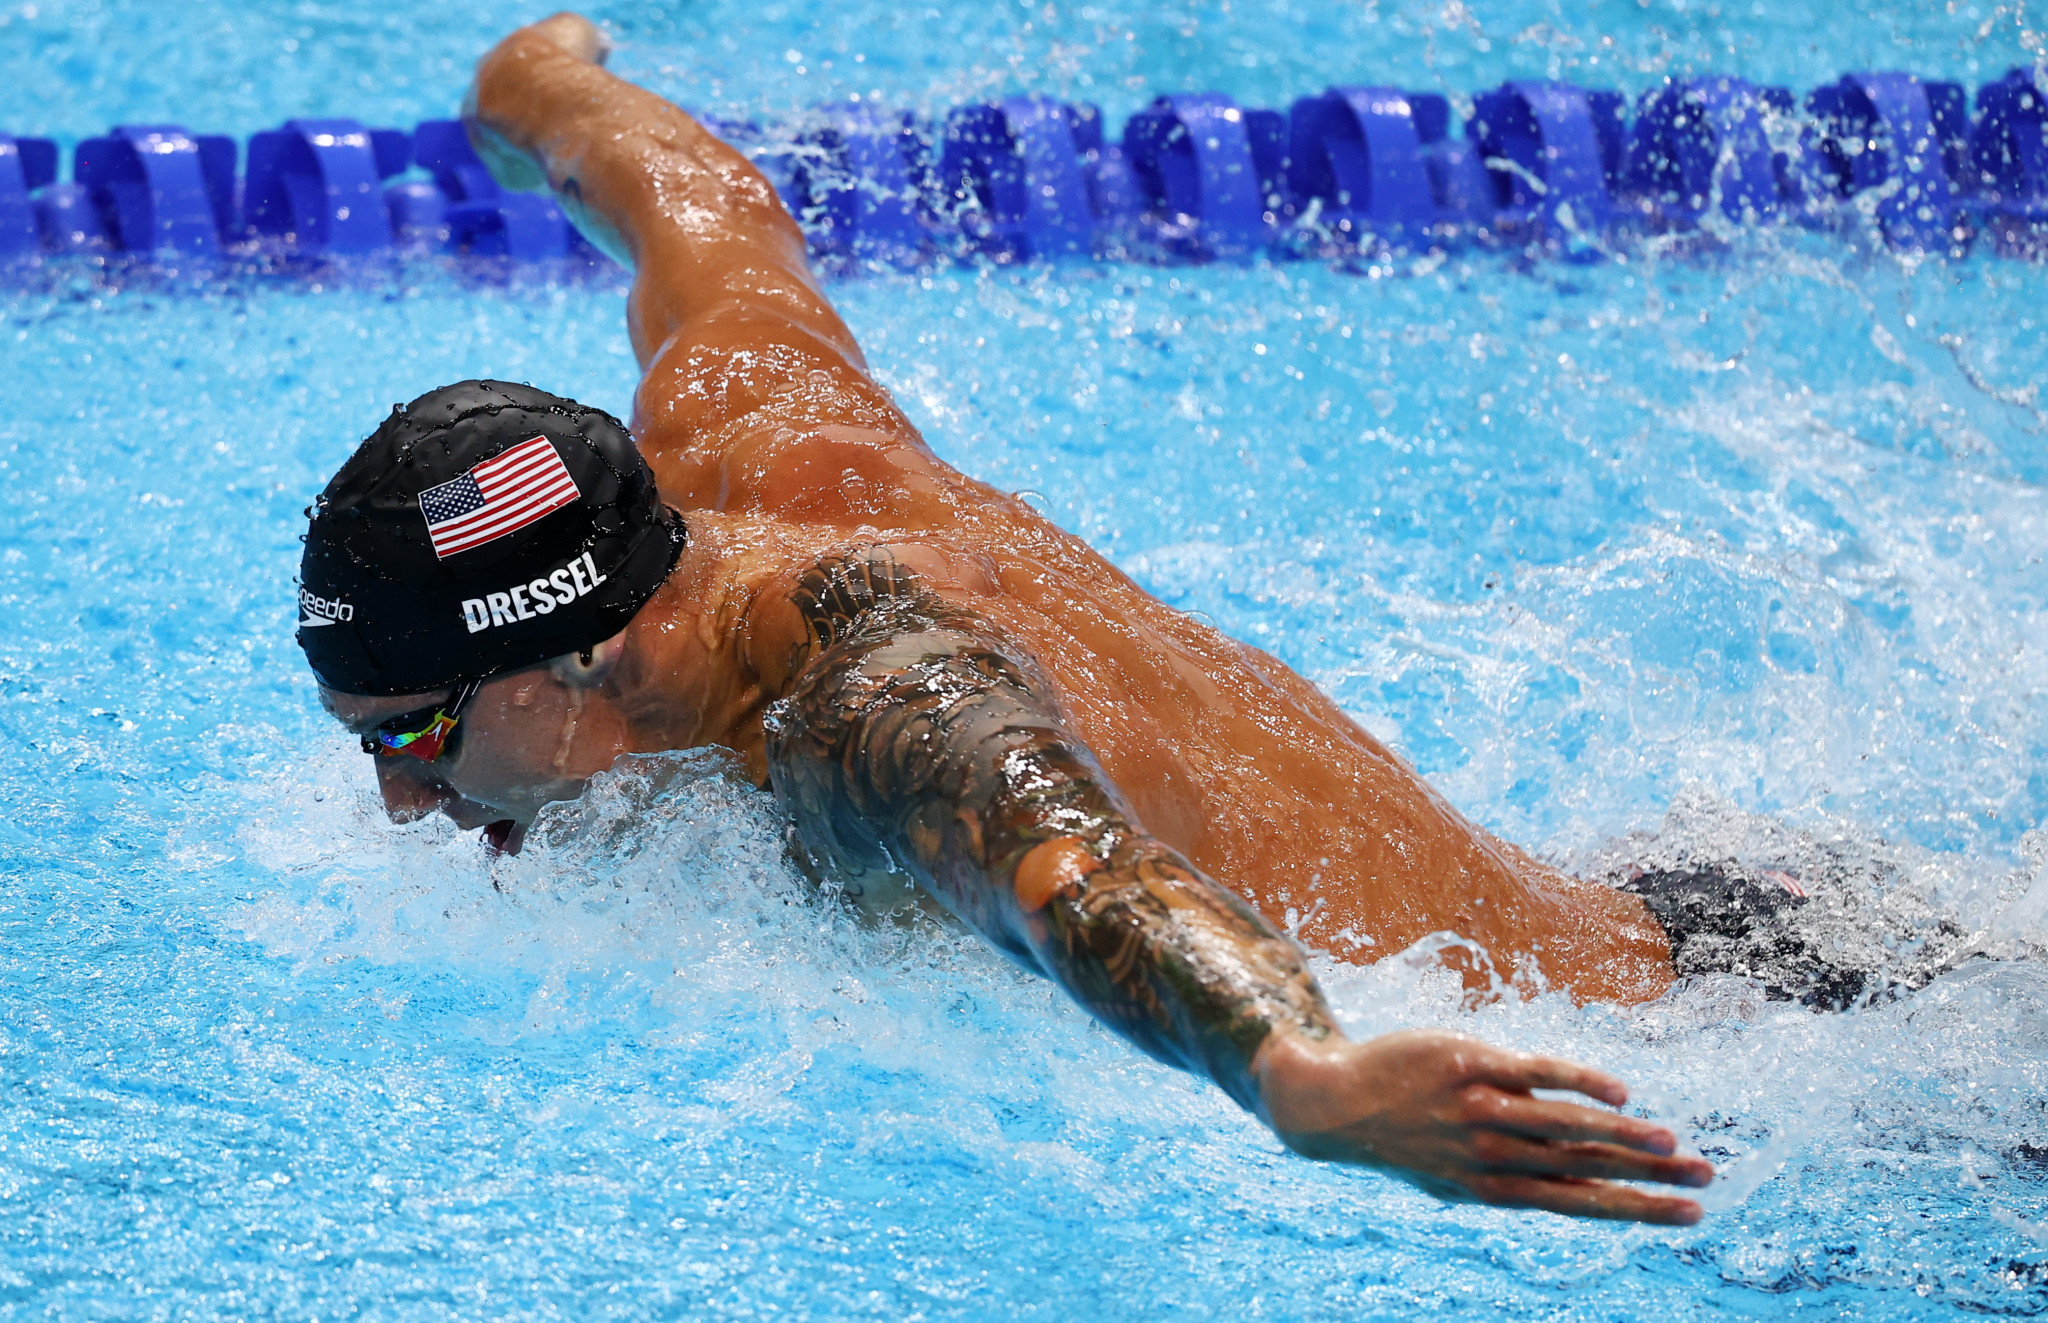 American Caeleb Dressel won the men's equivalents on the final day of swimming competition, and leaves Tokyo 2020 with five gold medals ©Getty Images